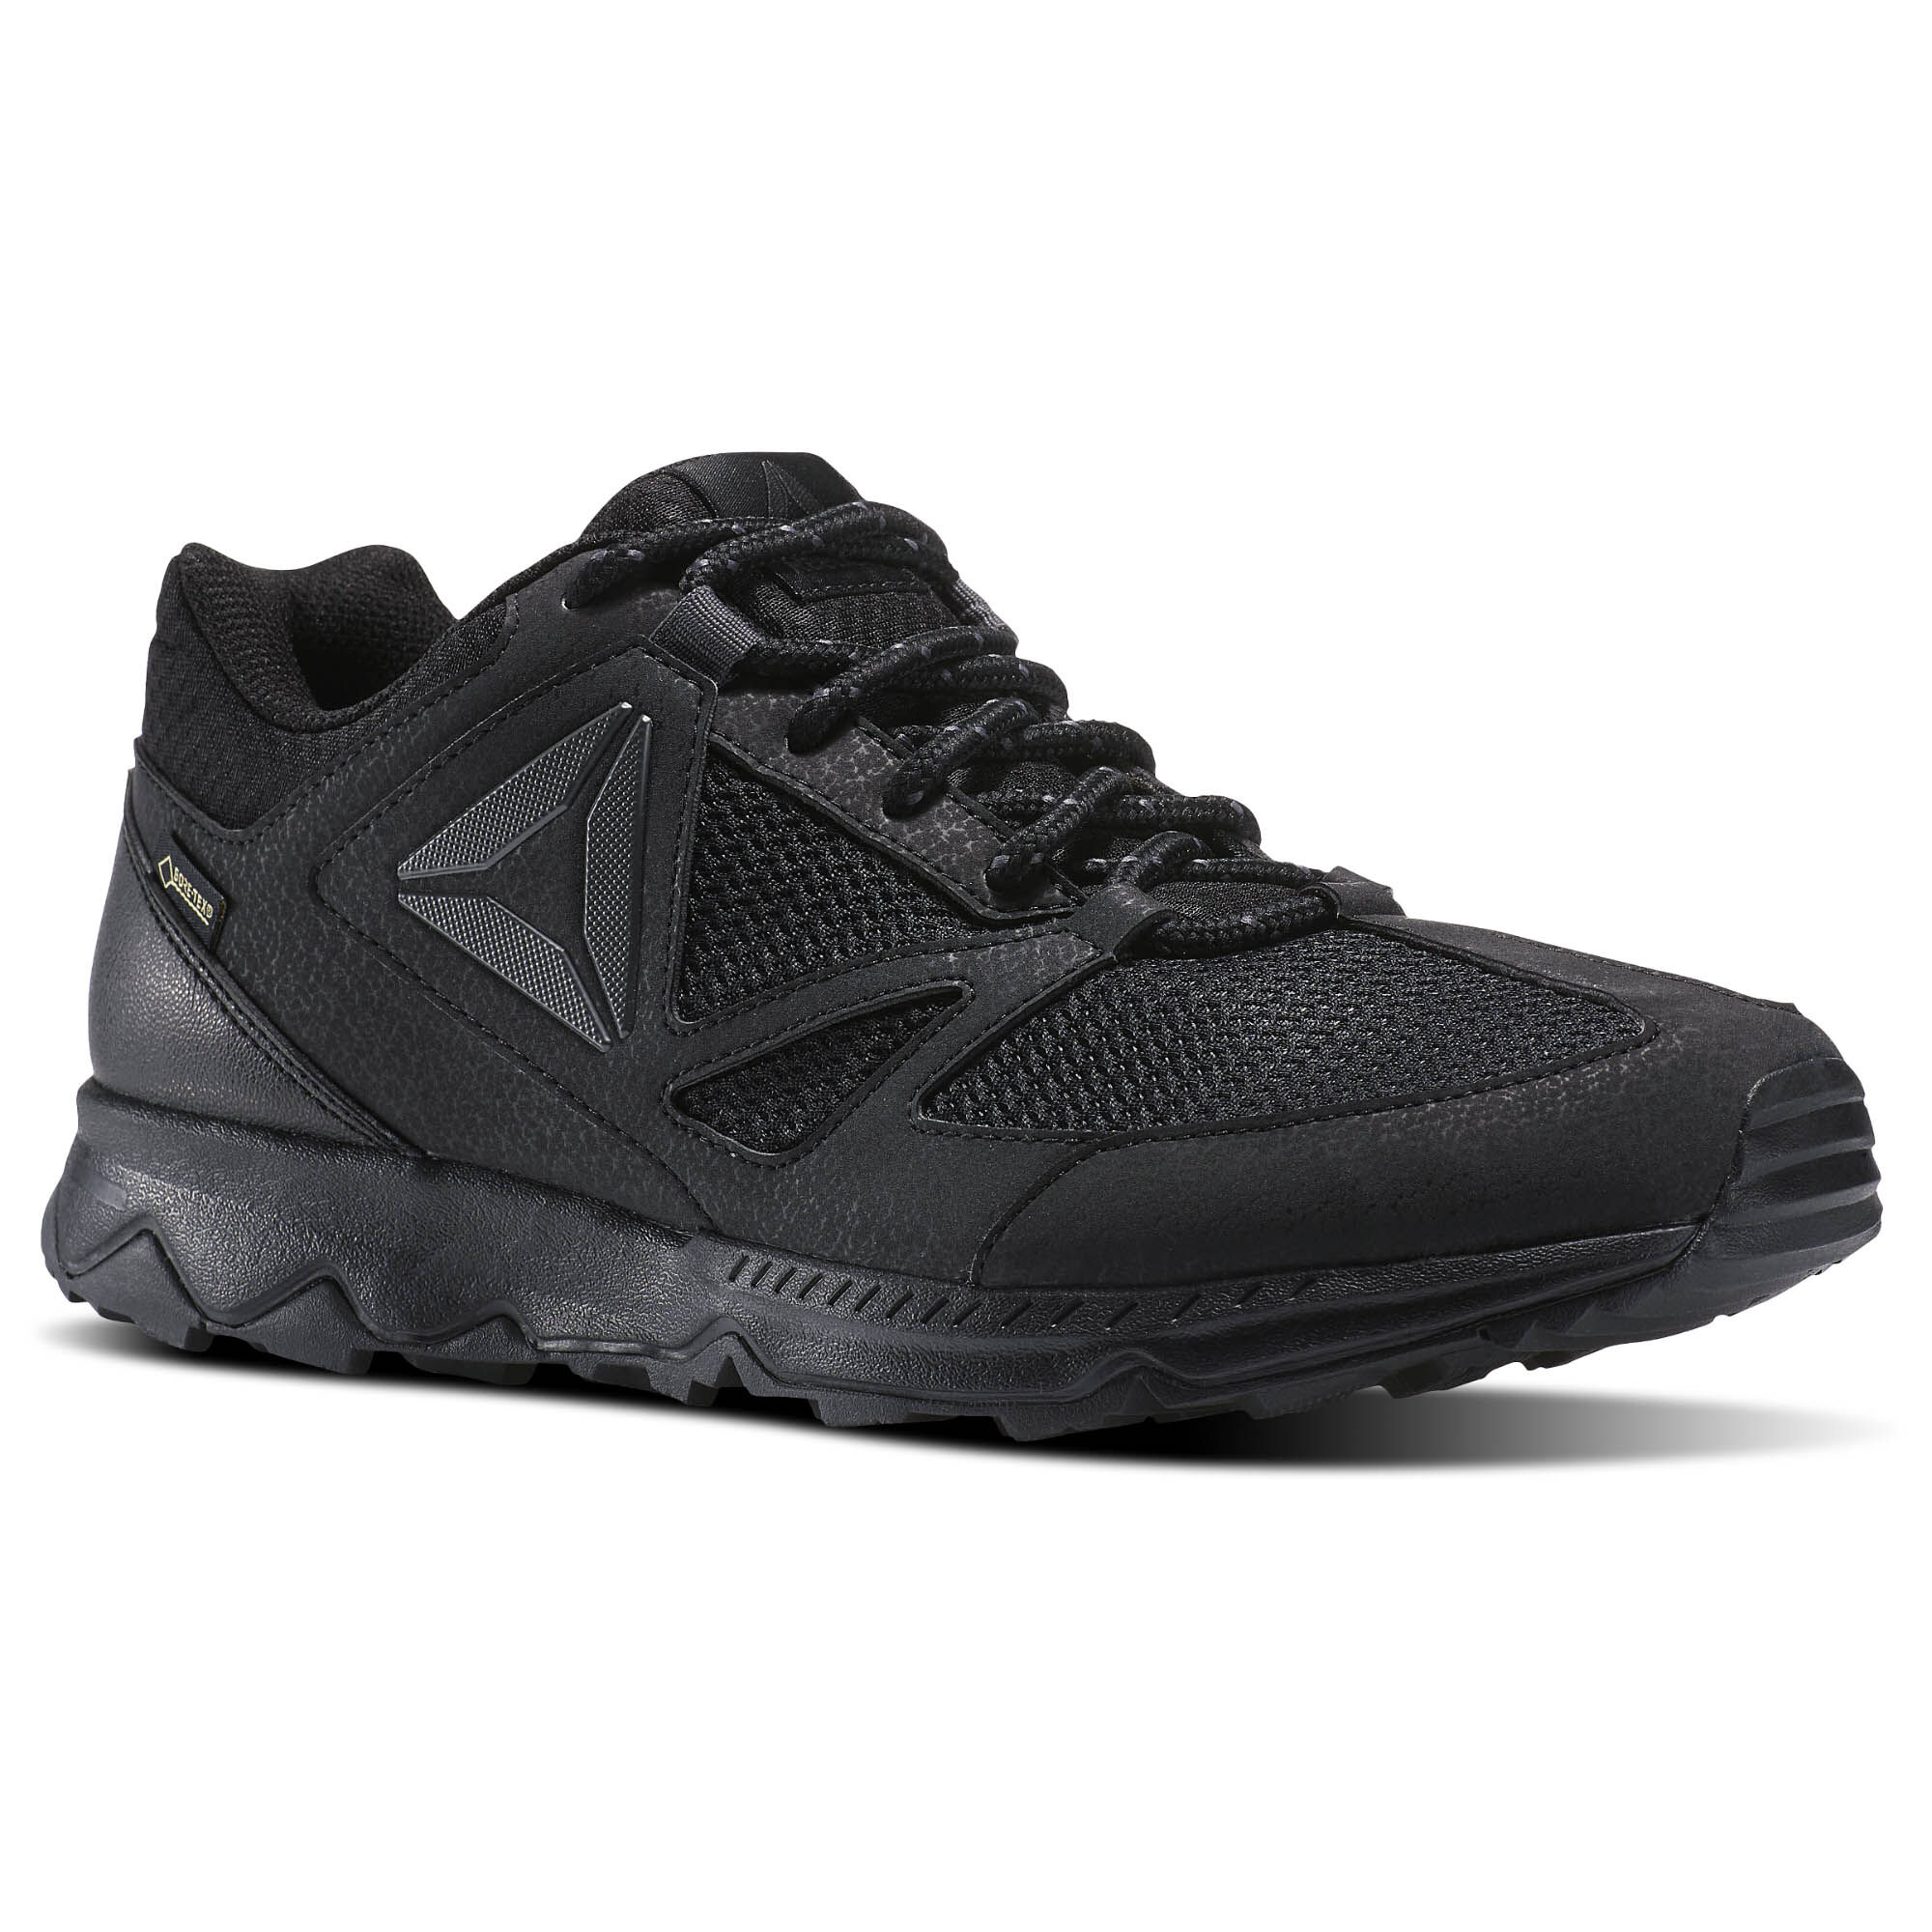 Reebok SKYE PEAK GTX 5.0 - Walking trainers - black/ash grey/coal